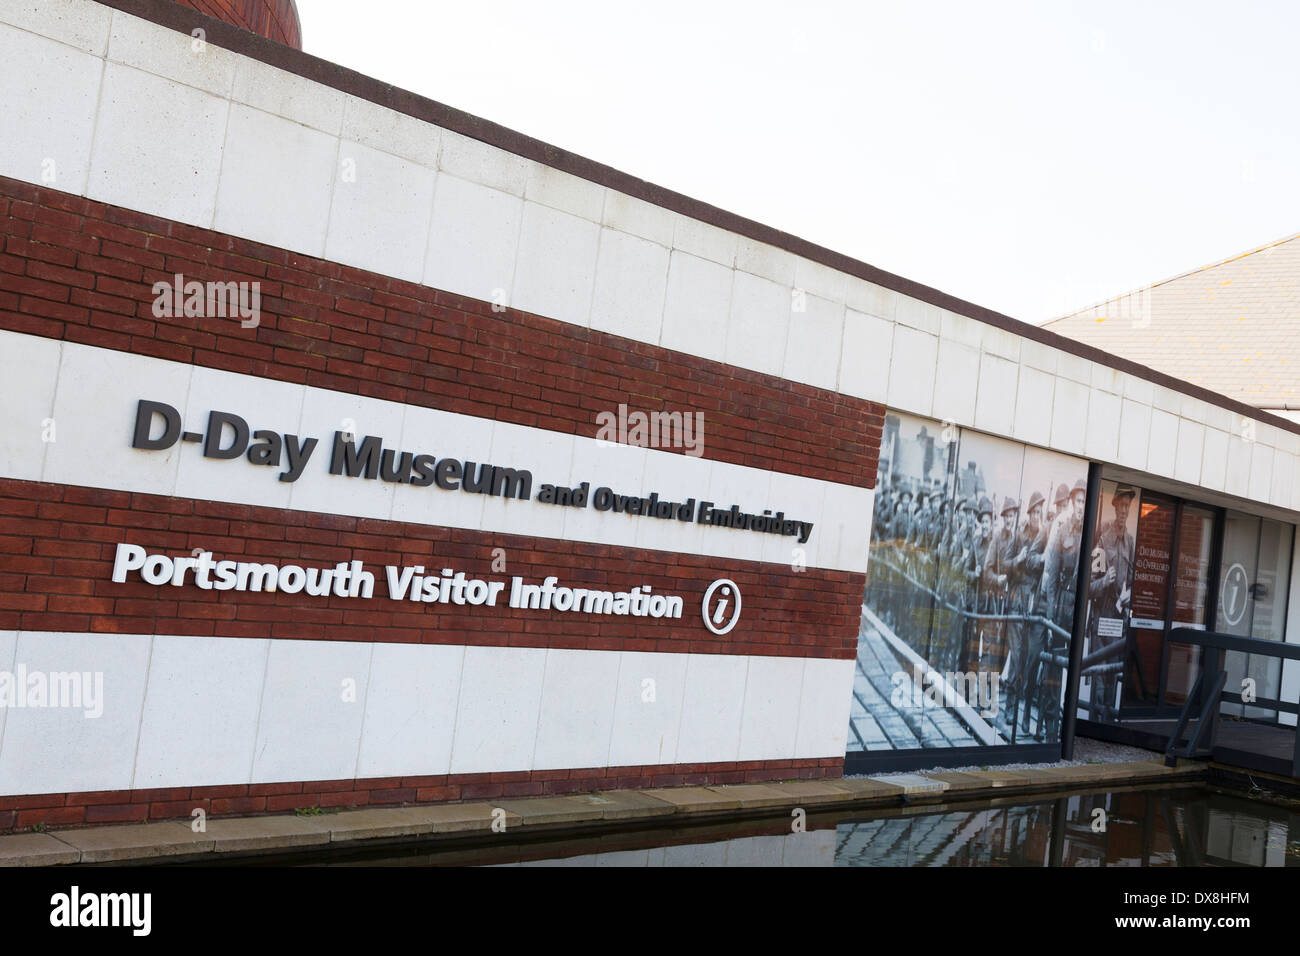 Exterior of the D-Day museum in Southsea. - Stock Image